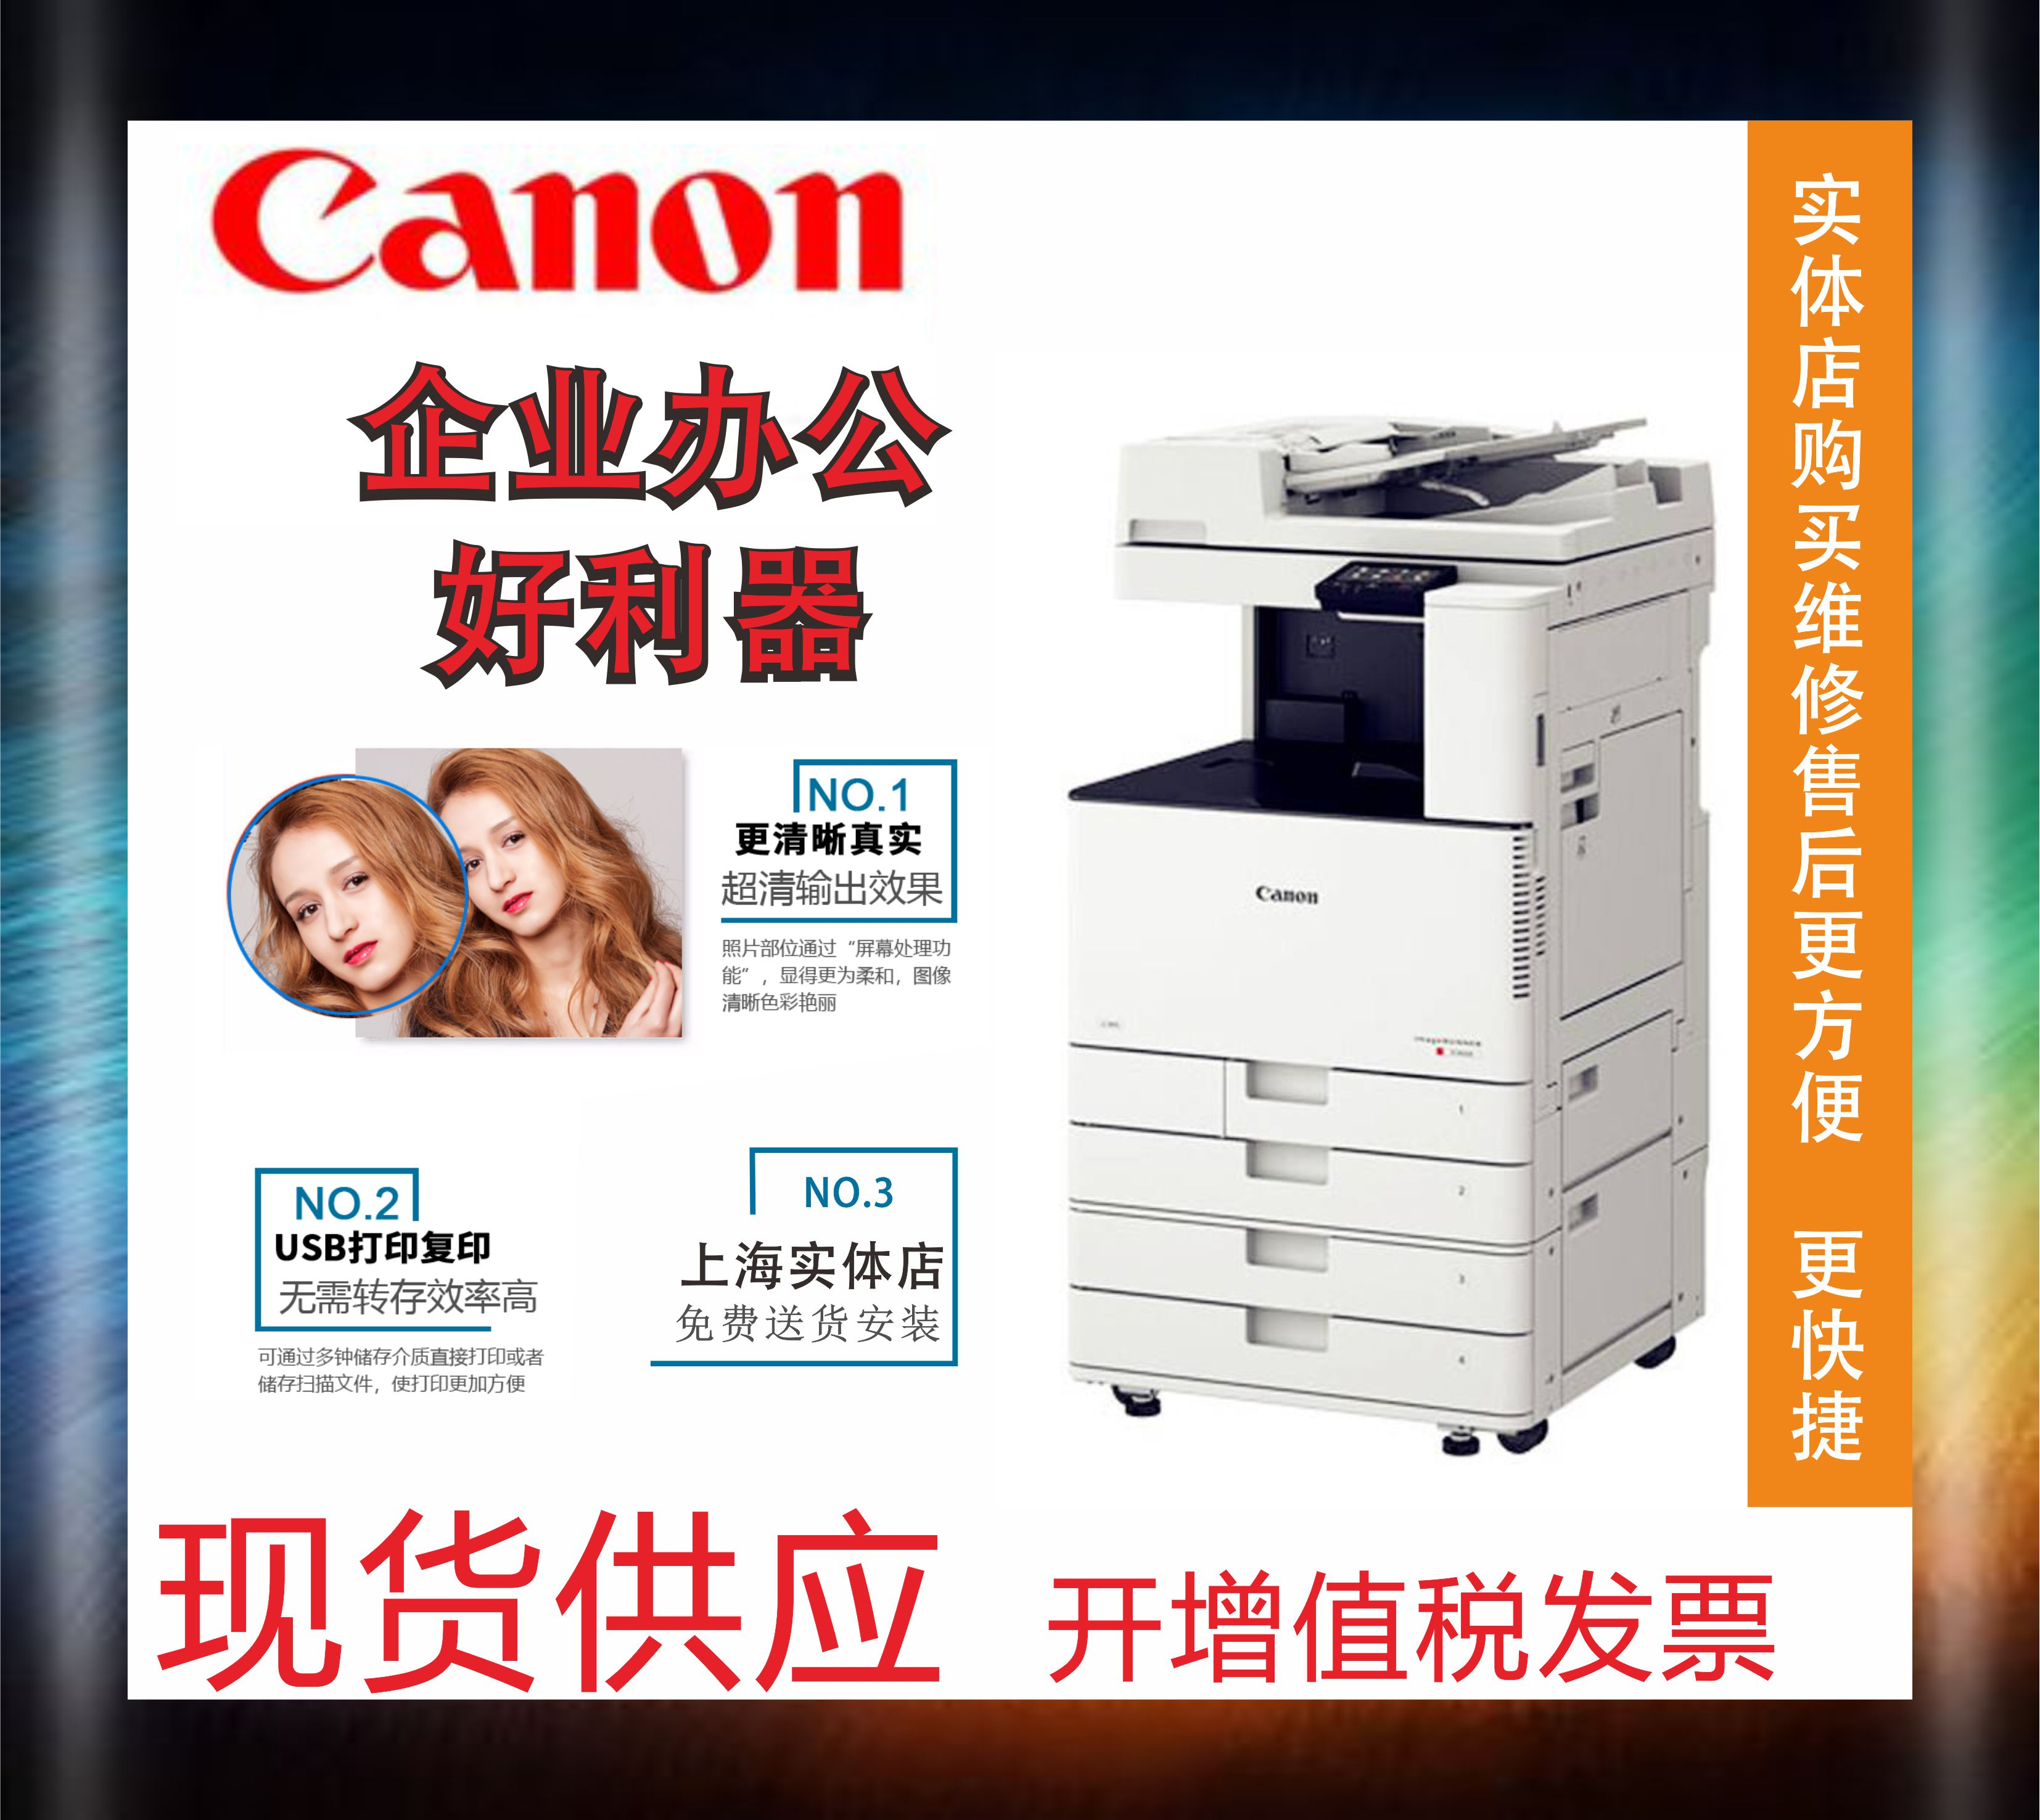 Canon Canon IR c3120l / c3020 / c3025 A3 black and white color printing and copying machine